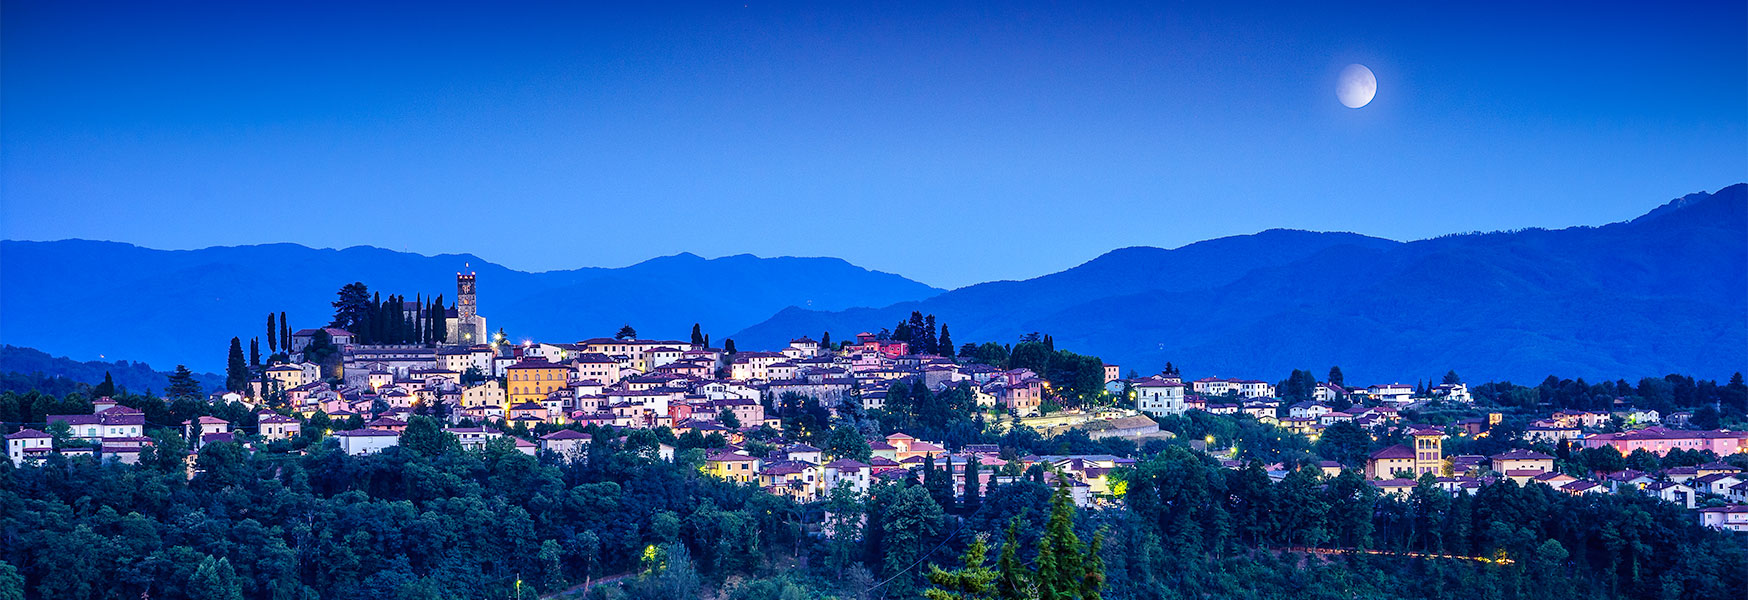 Barga at Blue Hour